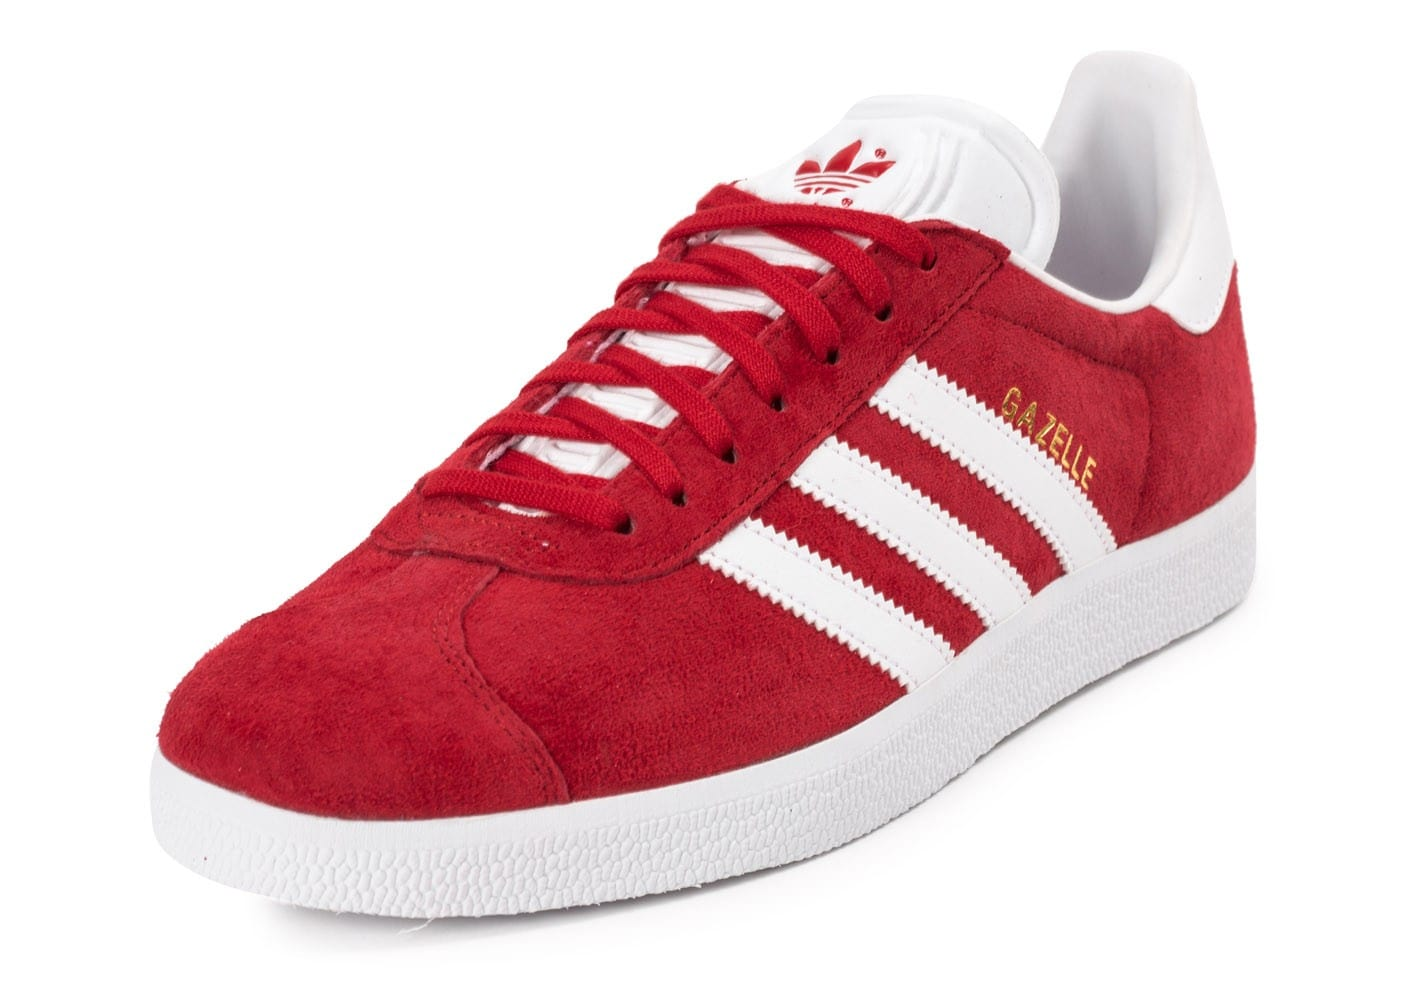 adidas Gazelle rouge - Chaussures Baskets homme - Chausport